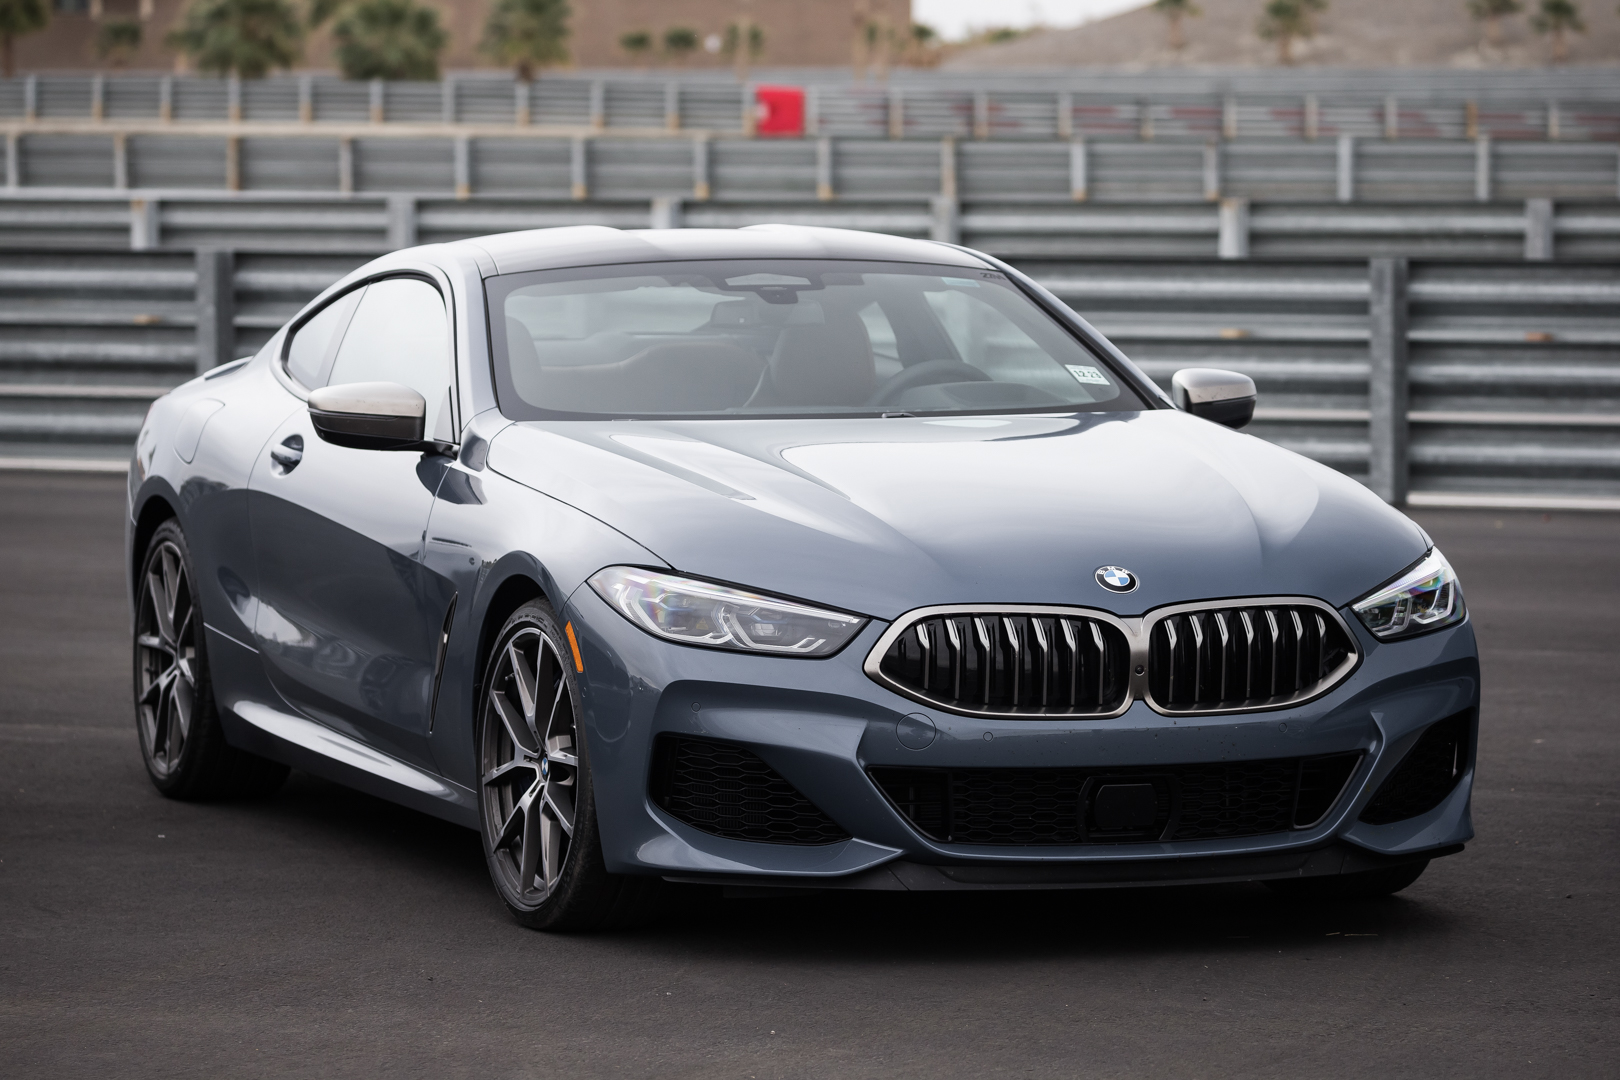 BMW M850i xDrive Thermal Club 69 of 49